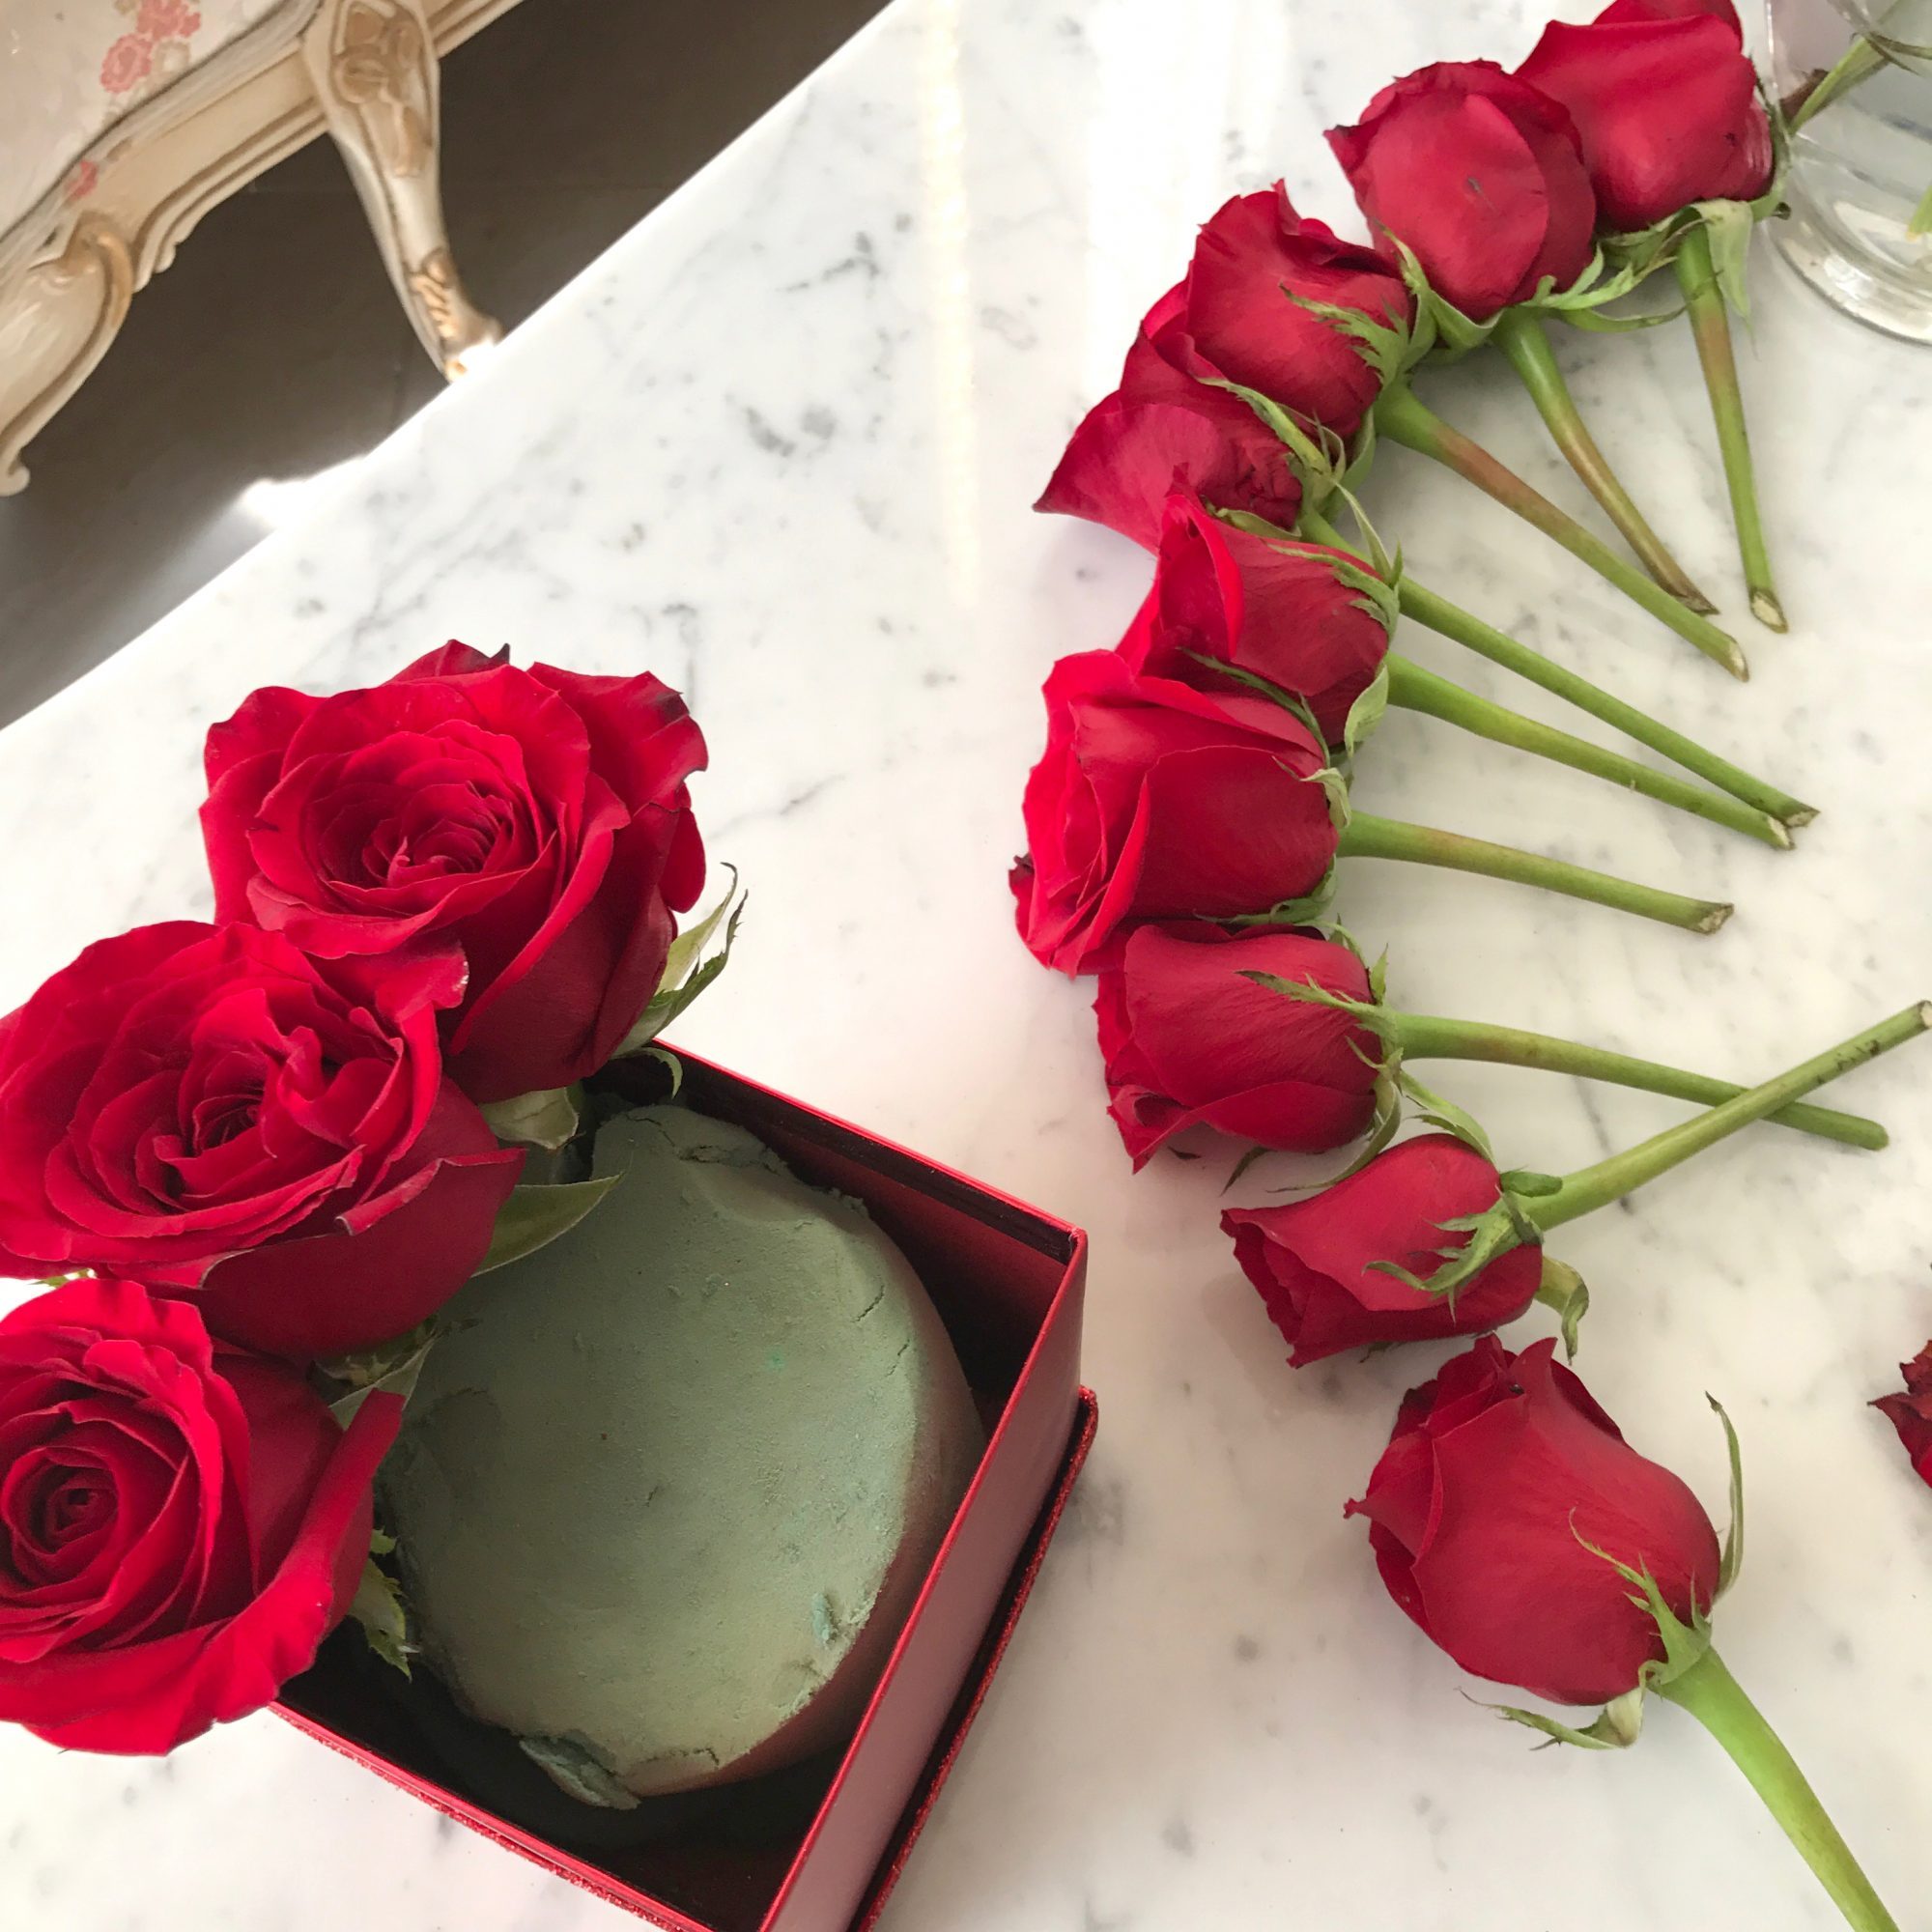 Step 1: Cut the stems of the roses so that the bulbs will sit above the box. Make sure to pick off any dying or blemished petals. - www.theballeronabudget.com